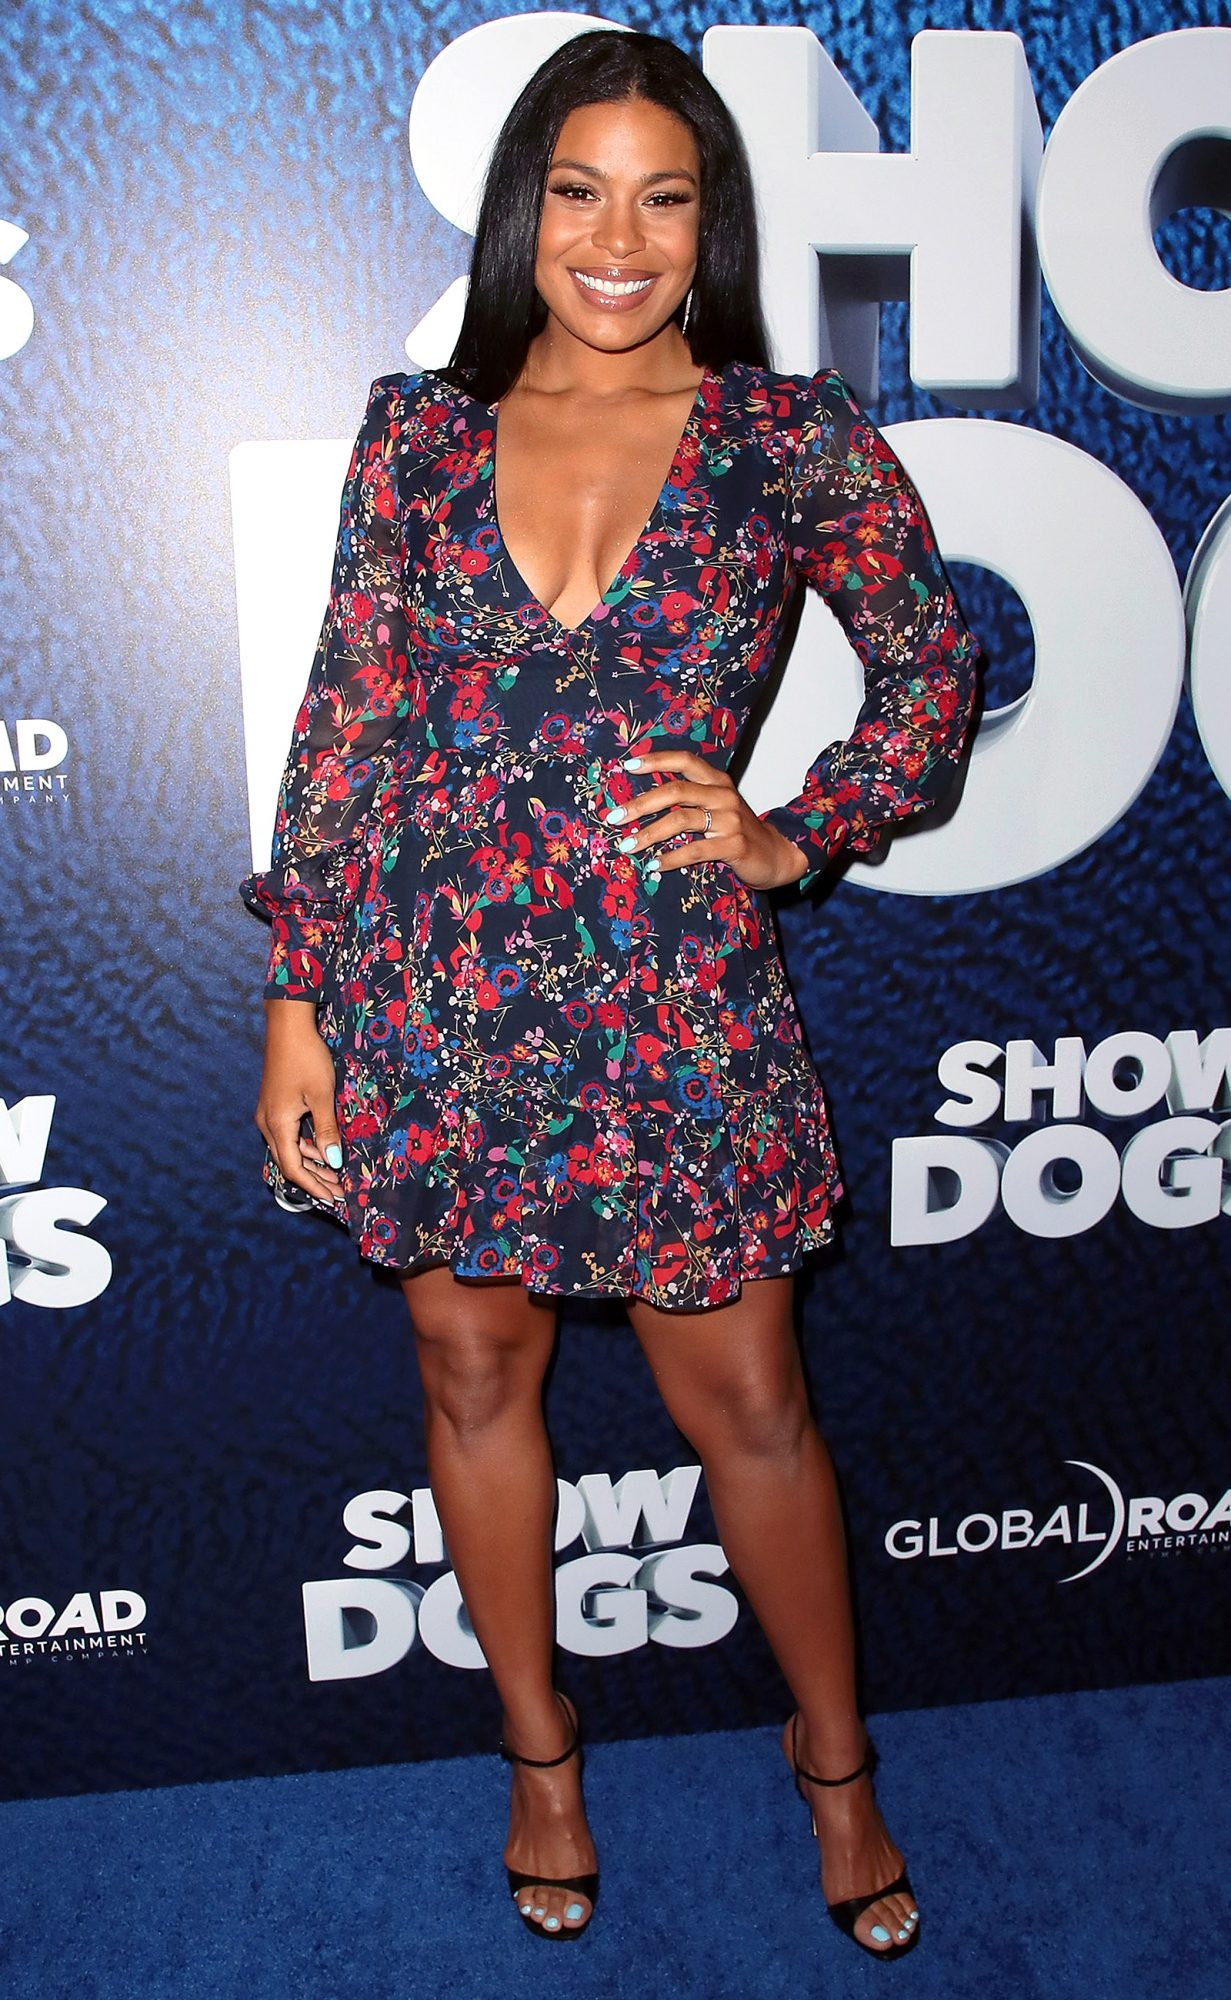 """Premiere Of Global Road Entertainment's """"Show Dogs"""" - Arrivals"""